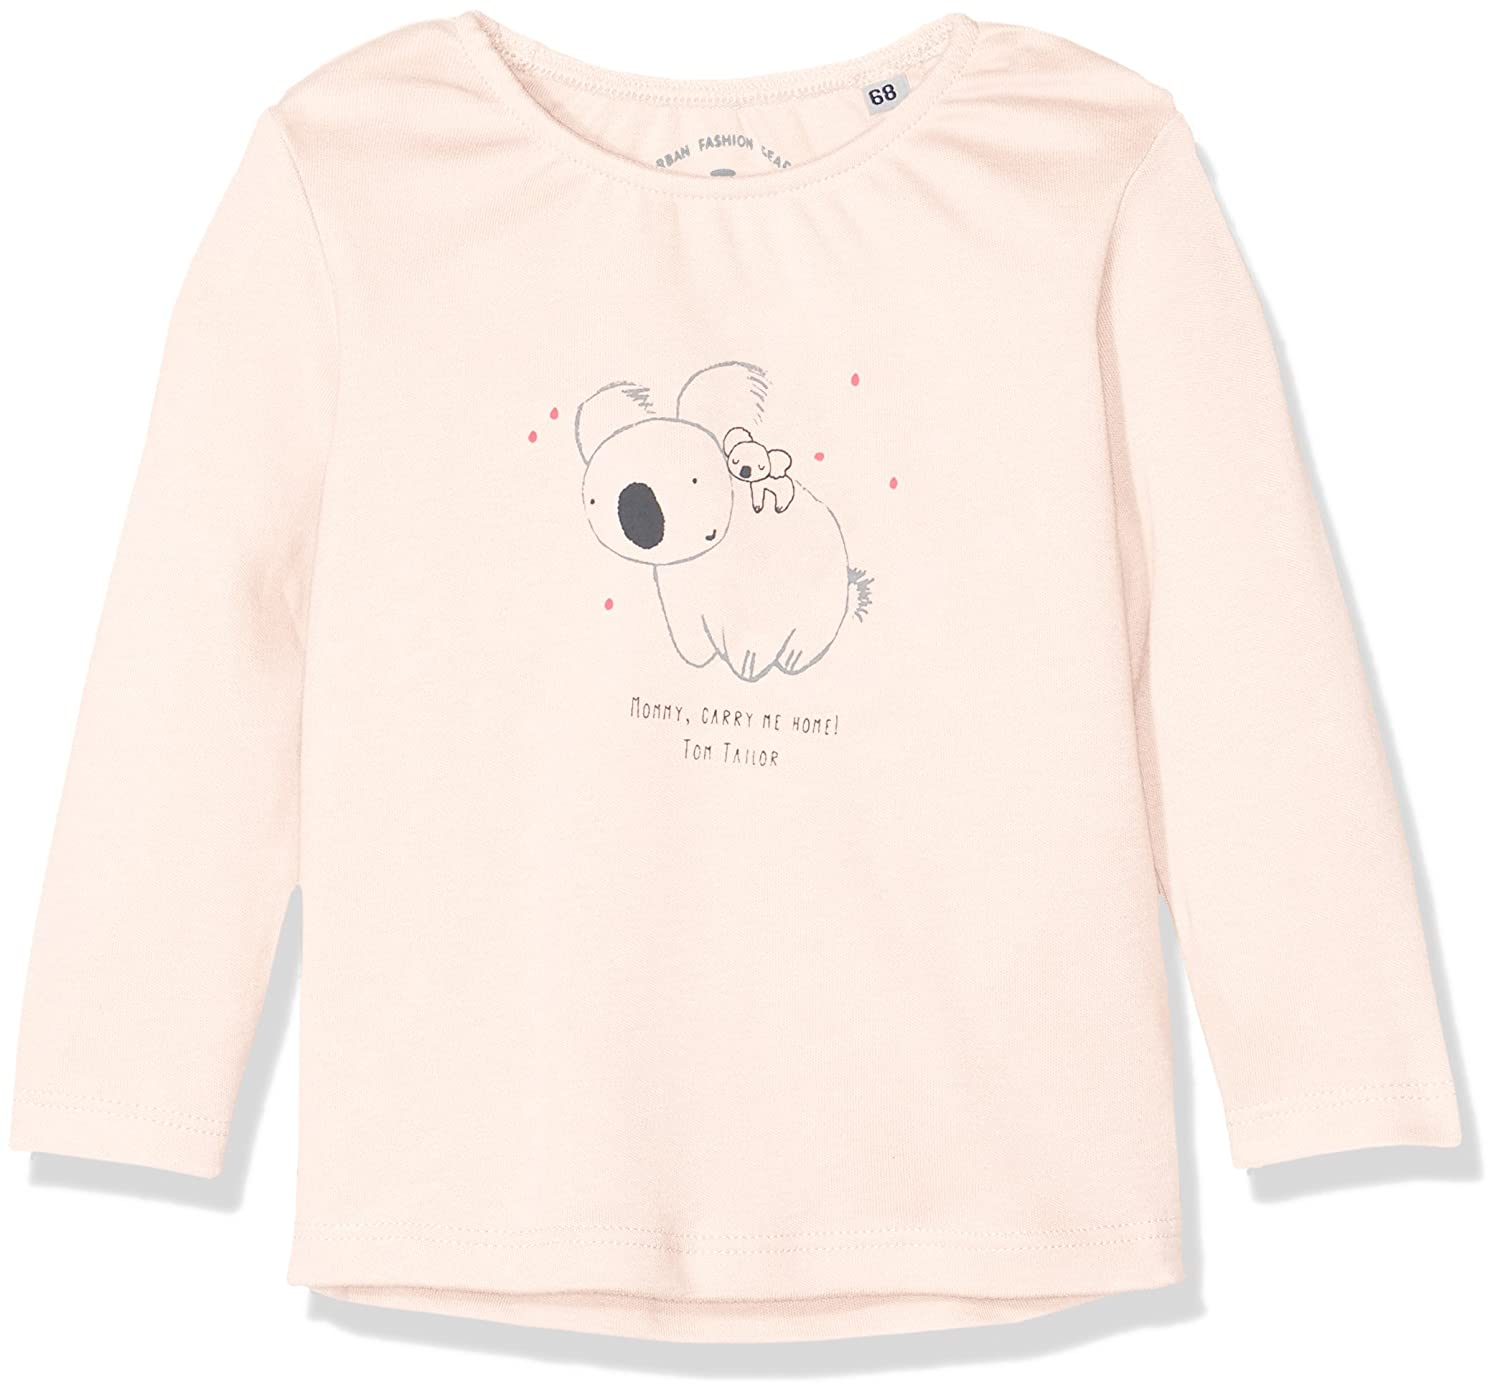 Tom Tailor Baby T-Shirt 1038951.00.21